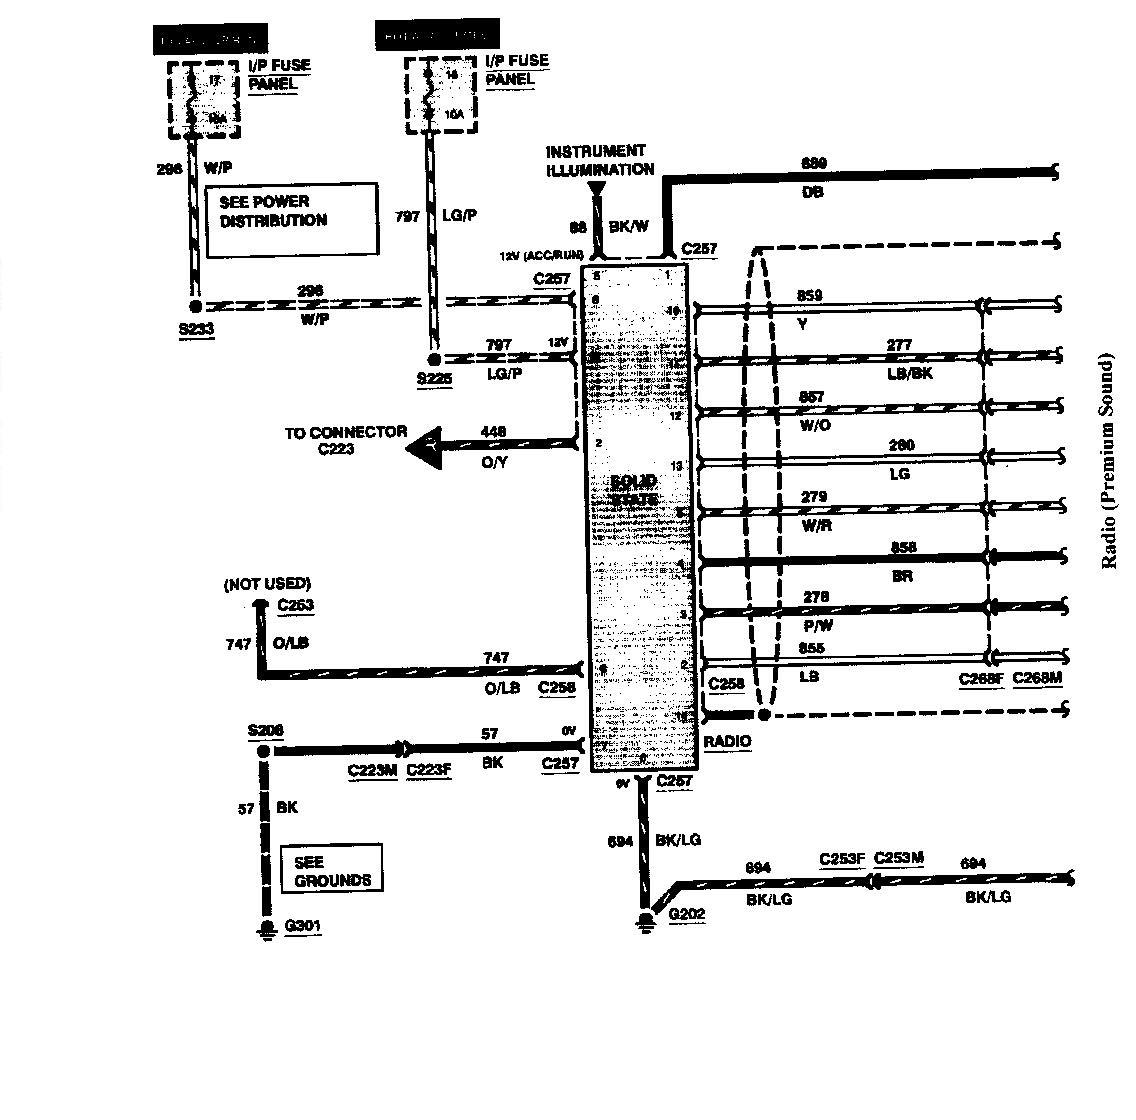 95Mark8 Premium Sound Wiring 95 mark 8 jbl wiring diagram needed lincolns online message forum 2002 lincoln ls radio wiring harness at fashall.co